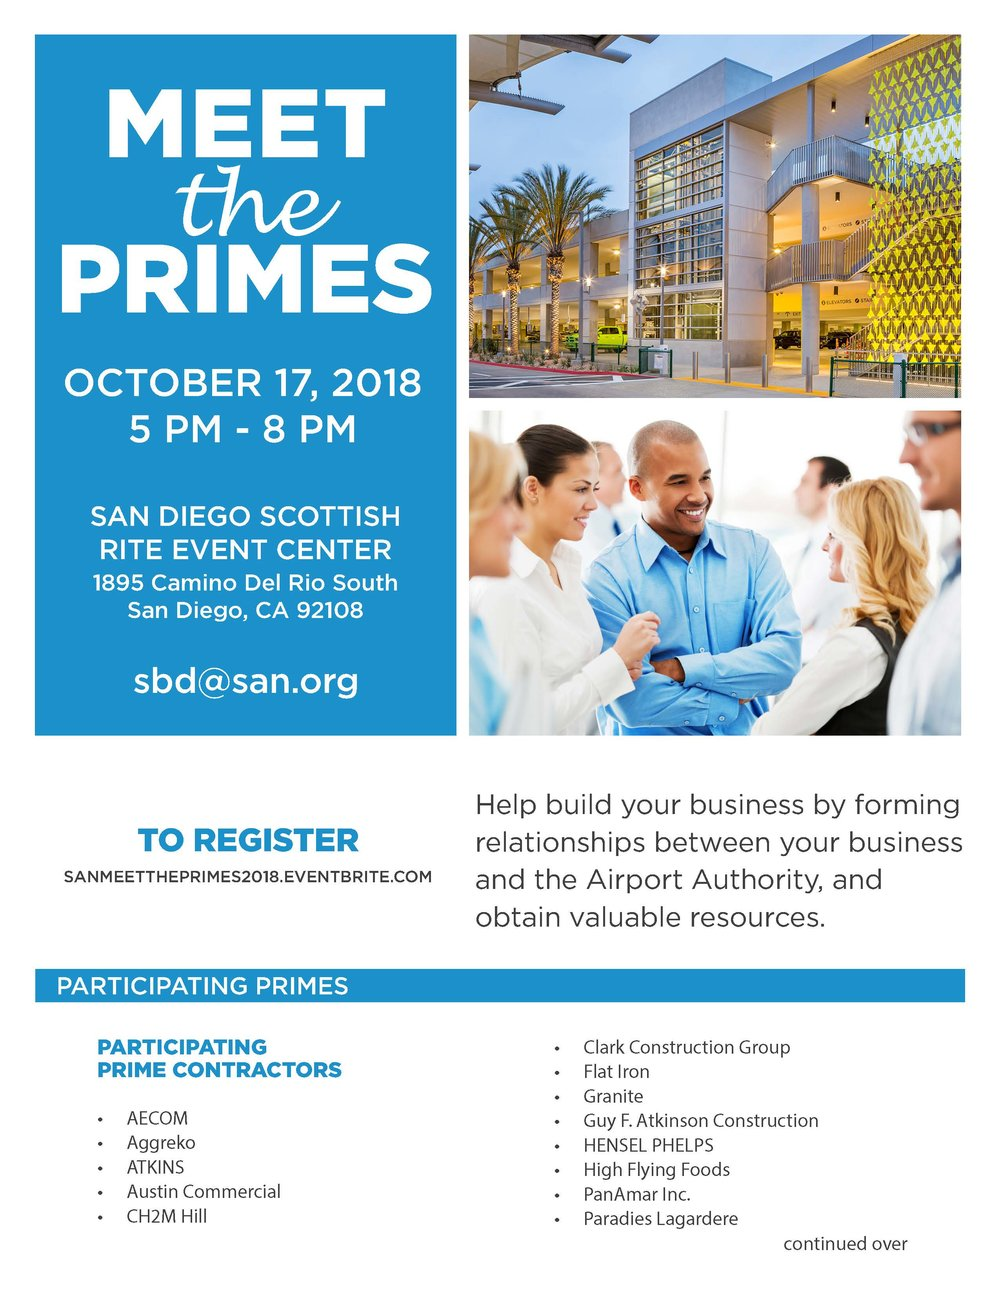 The flyer for the Meet the Primes event.